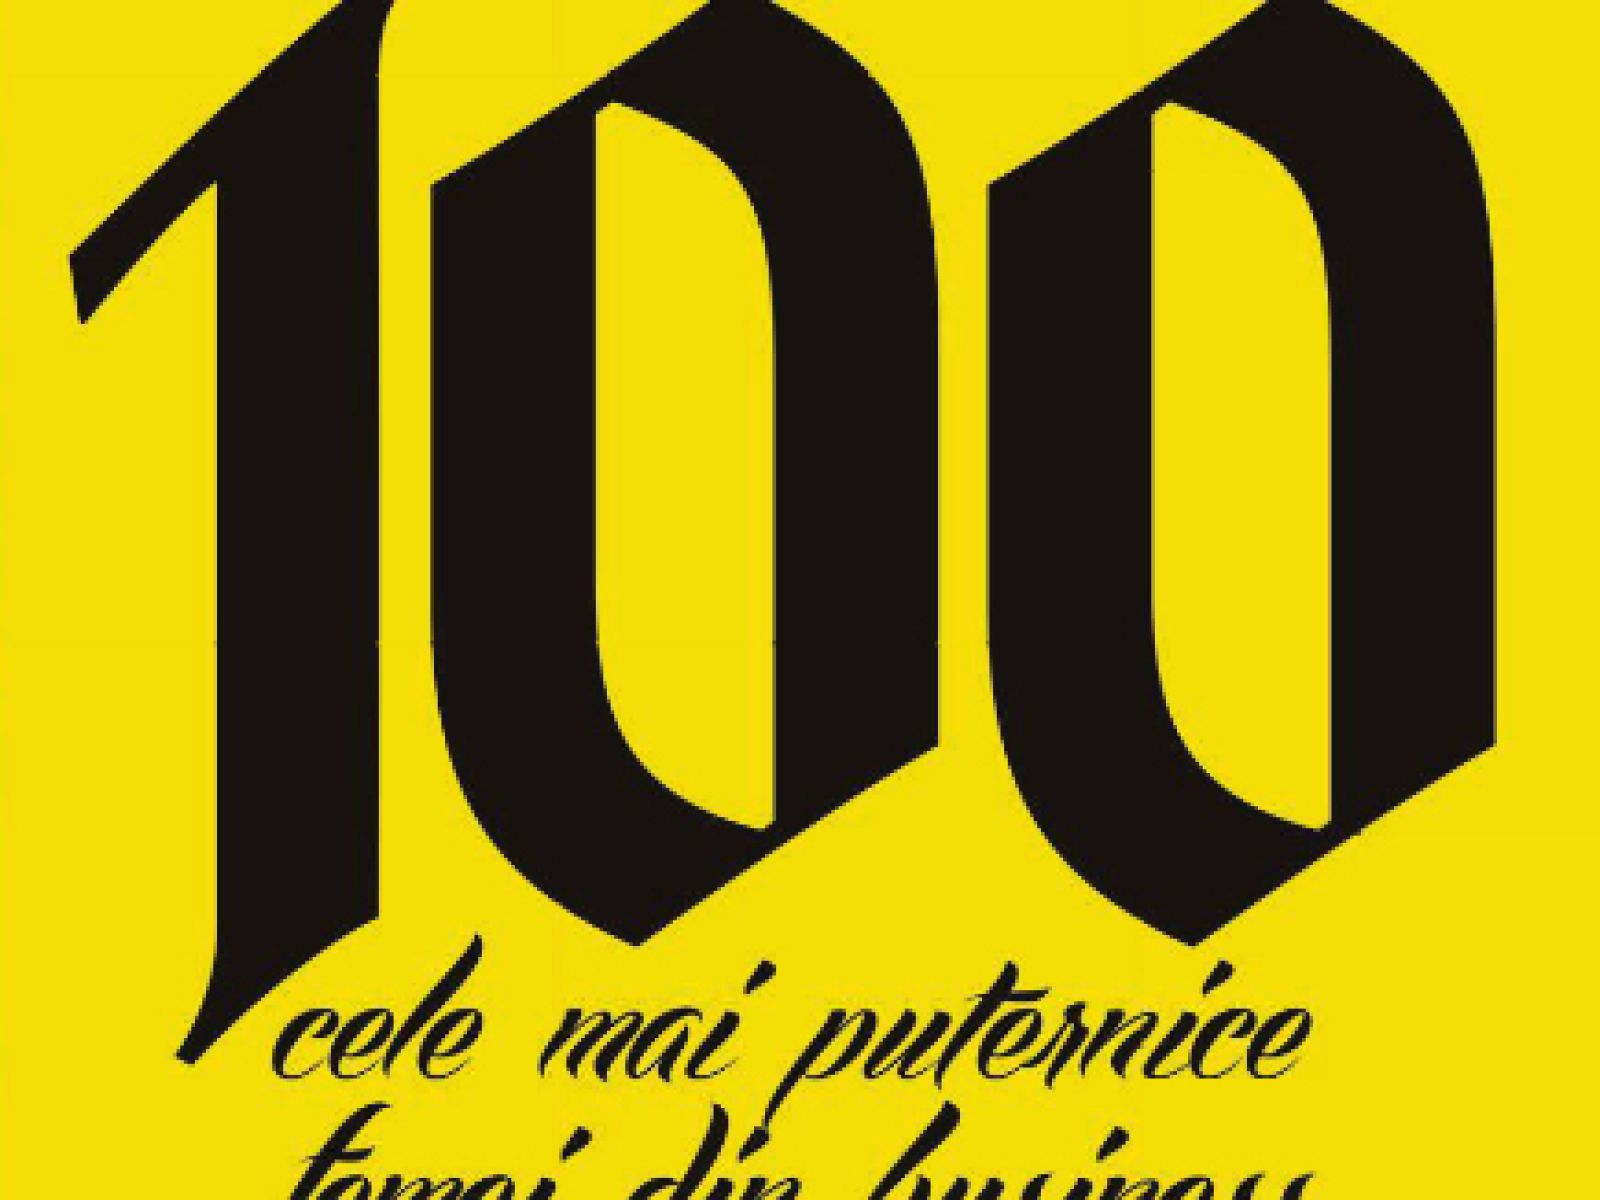 Cristina Căpitanu and Beatrice Dumitrașcu, in Business Magazin 100 most powerful women in business